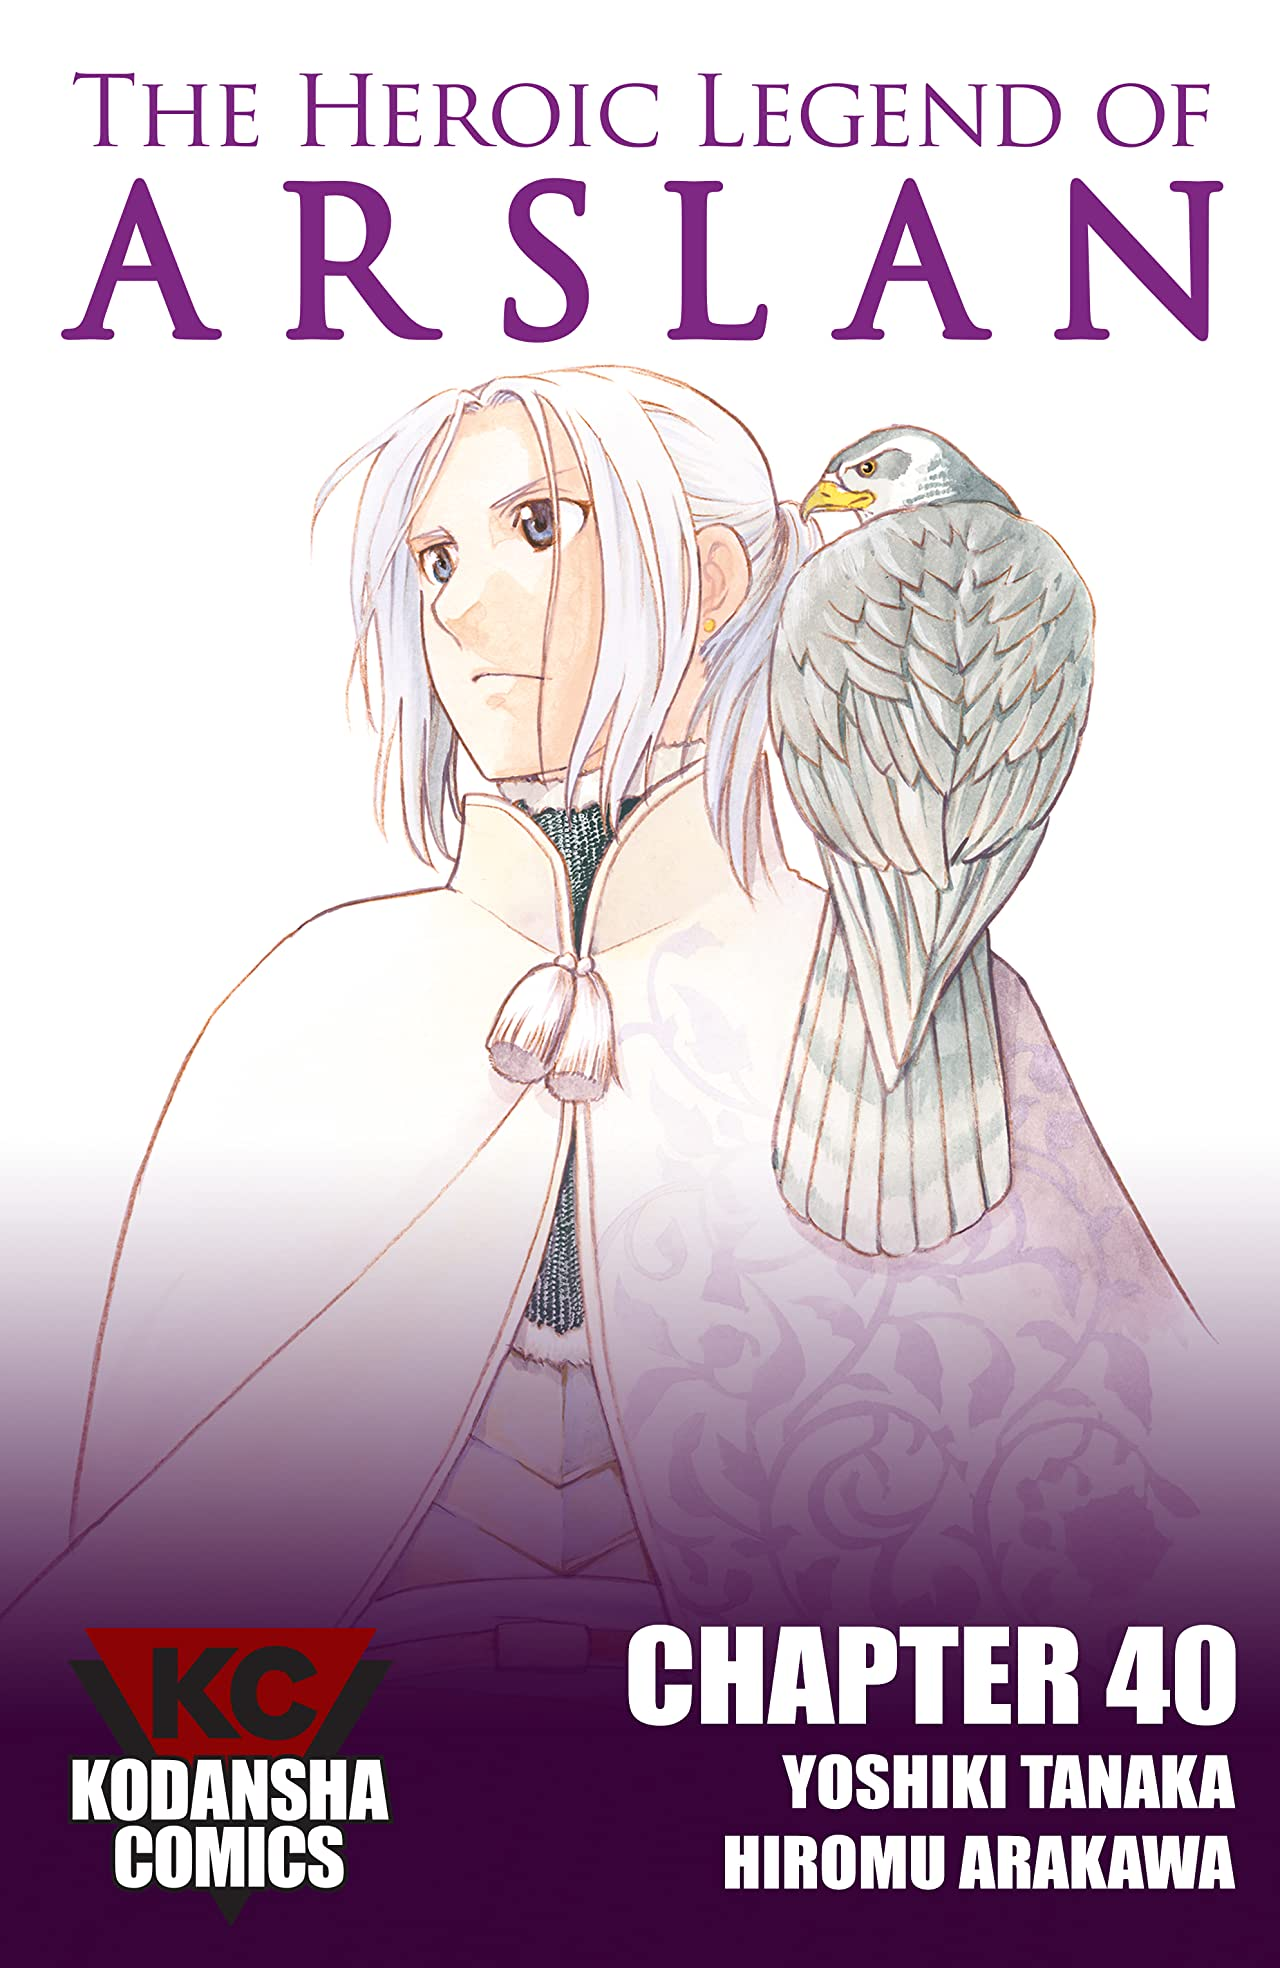 The Heroic Legend of Arslan #40